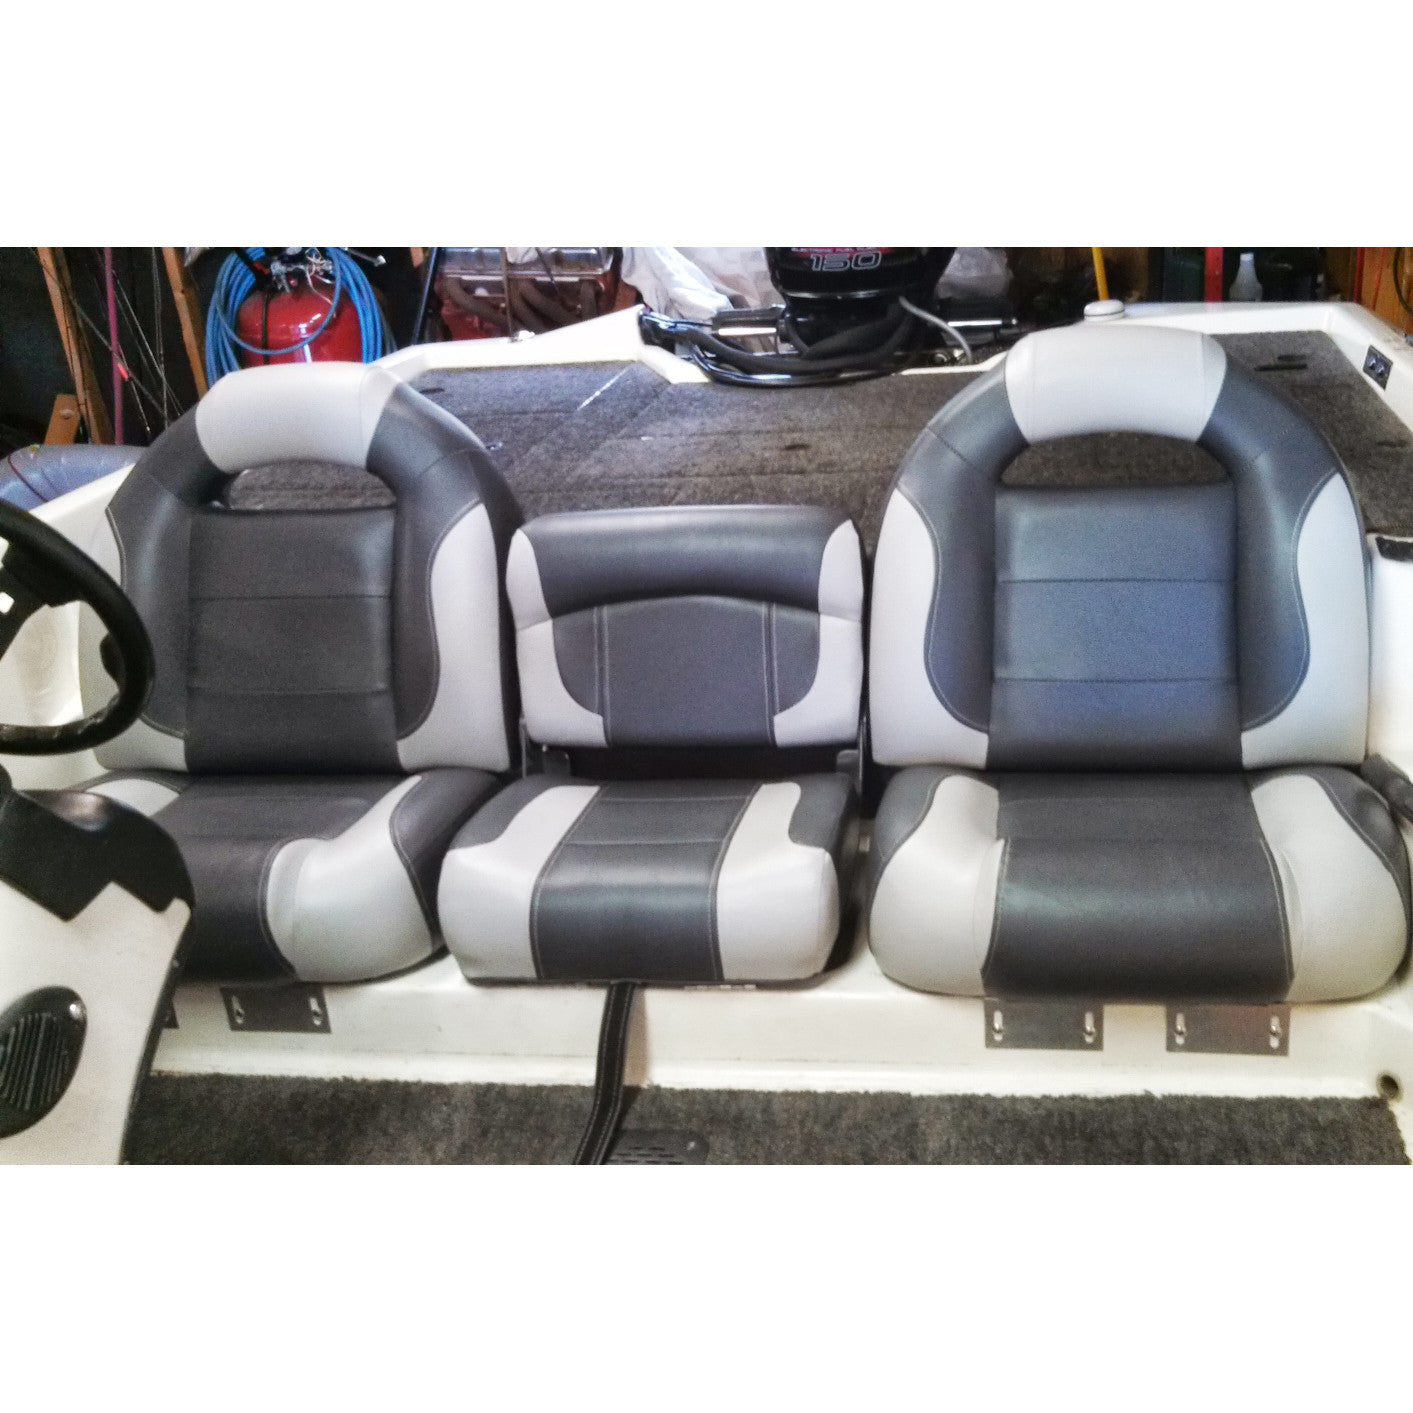 Bass Boat Seats | Complete Bass Boat Seat Interior Starting